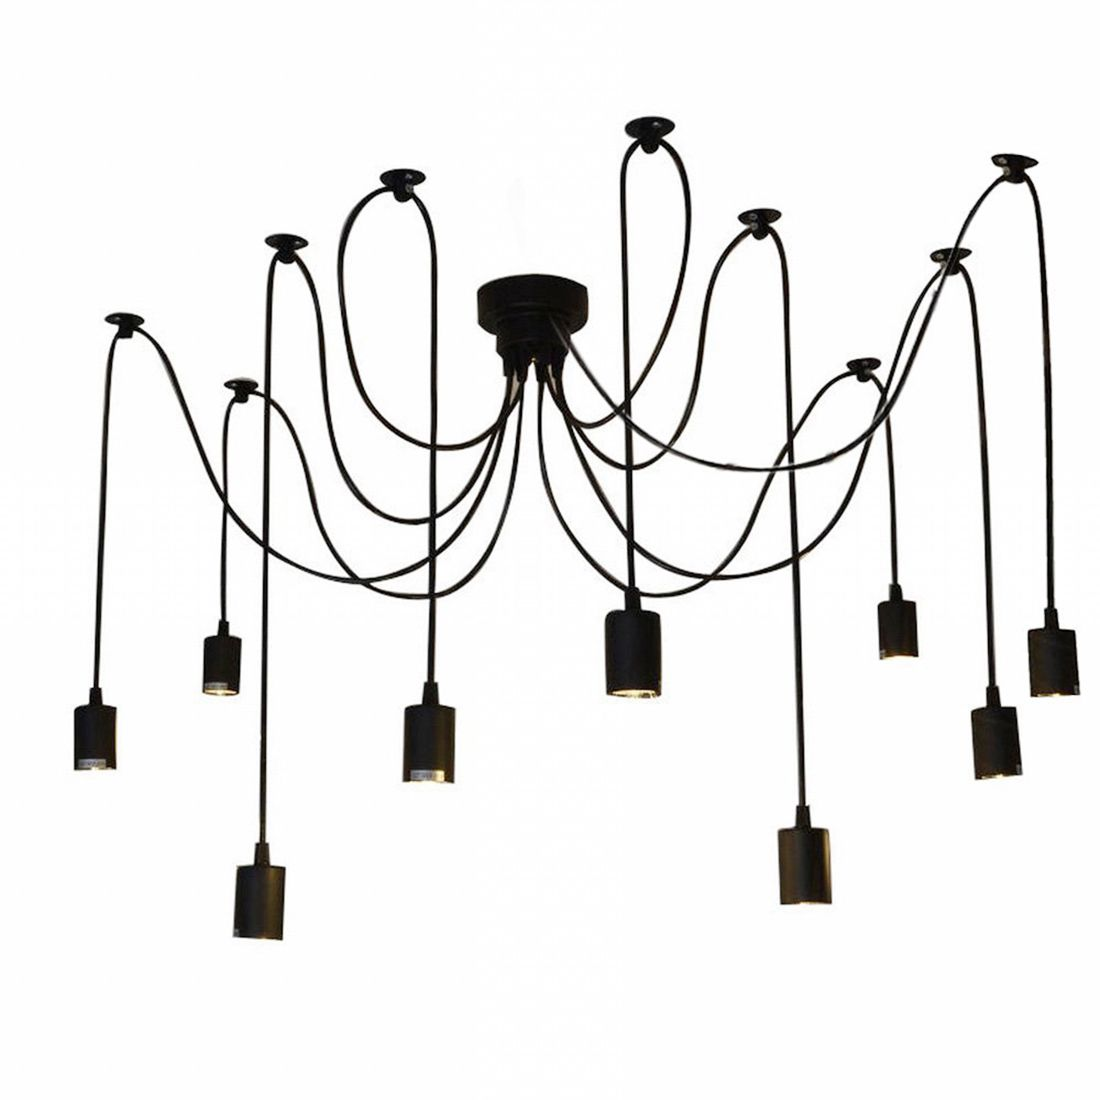 CSS 9 Lights E27 DIY Ceiling Spider Pendant Lamp Shade Light Antique Classic Adjustable Retro Chandelier Dining Hall Bedroom H 9lights e27 diy ceiling spider pendant lamp shade light antique classic adjustable retro chandelier dining home lighting fixture